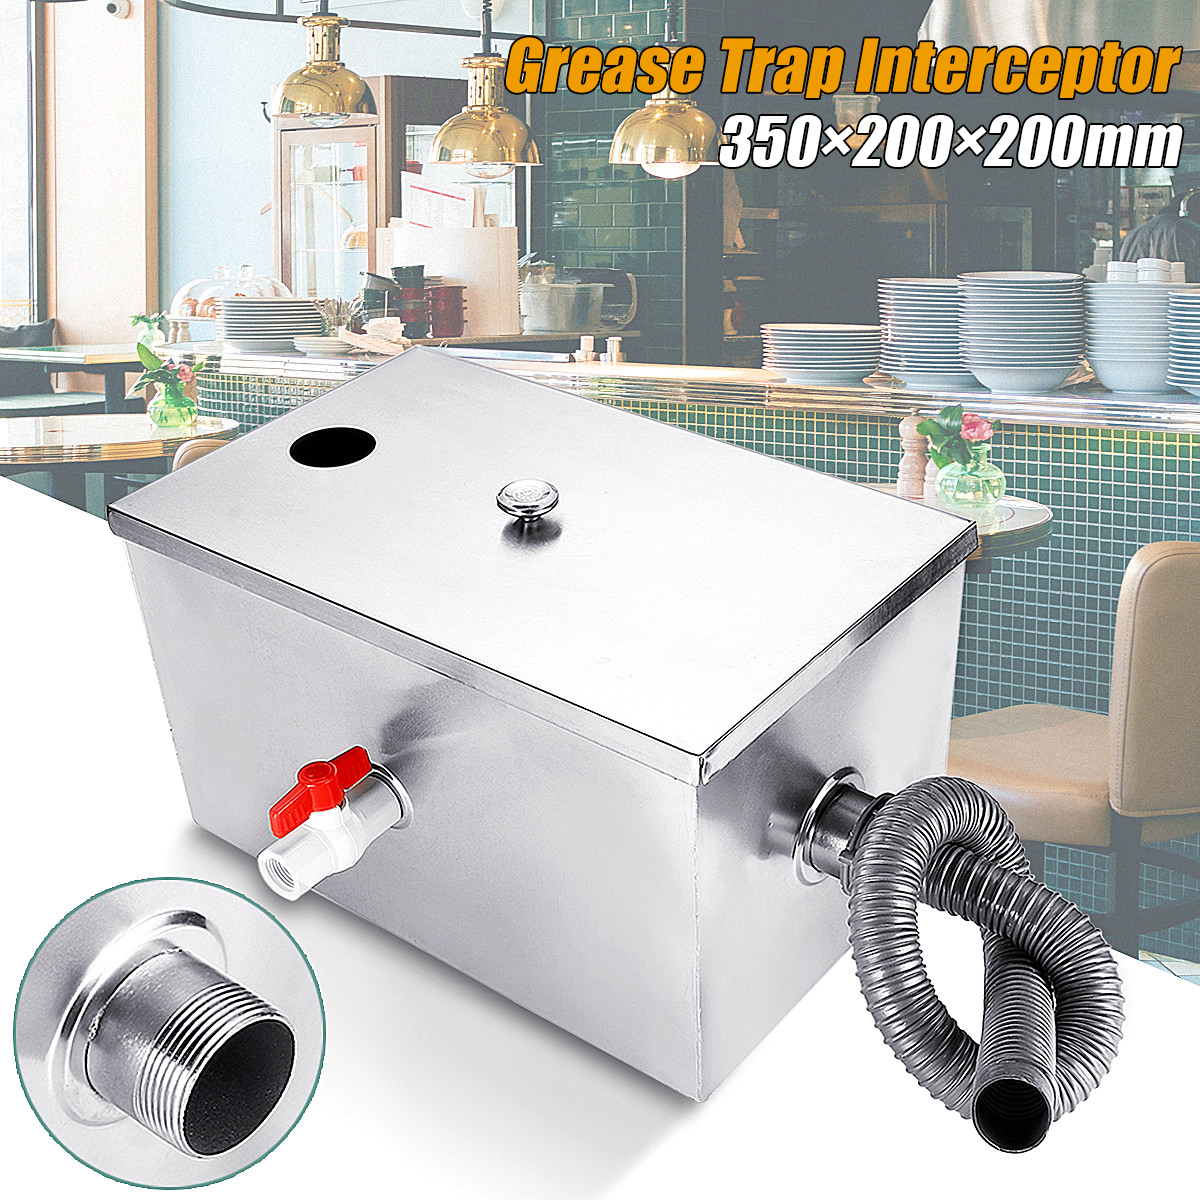 8LB 5GPM Gallons Per Minute Grease Trap Stainless Steel Interceptor Thickened for Restaurant Kitchen Wastewater